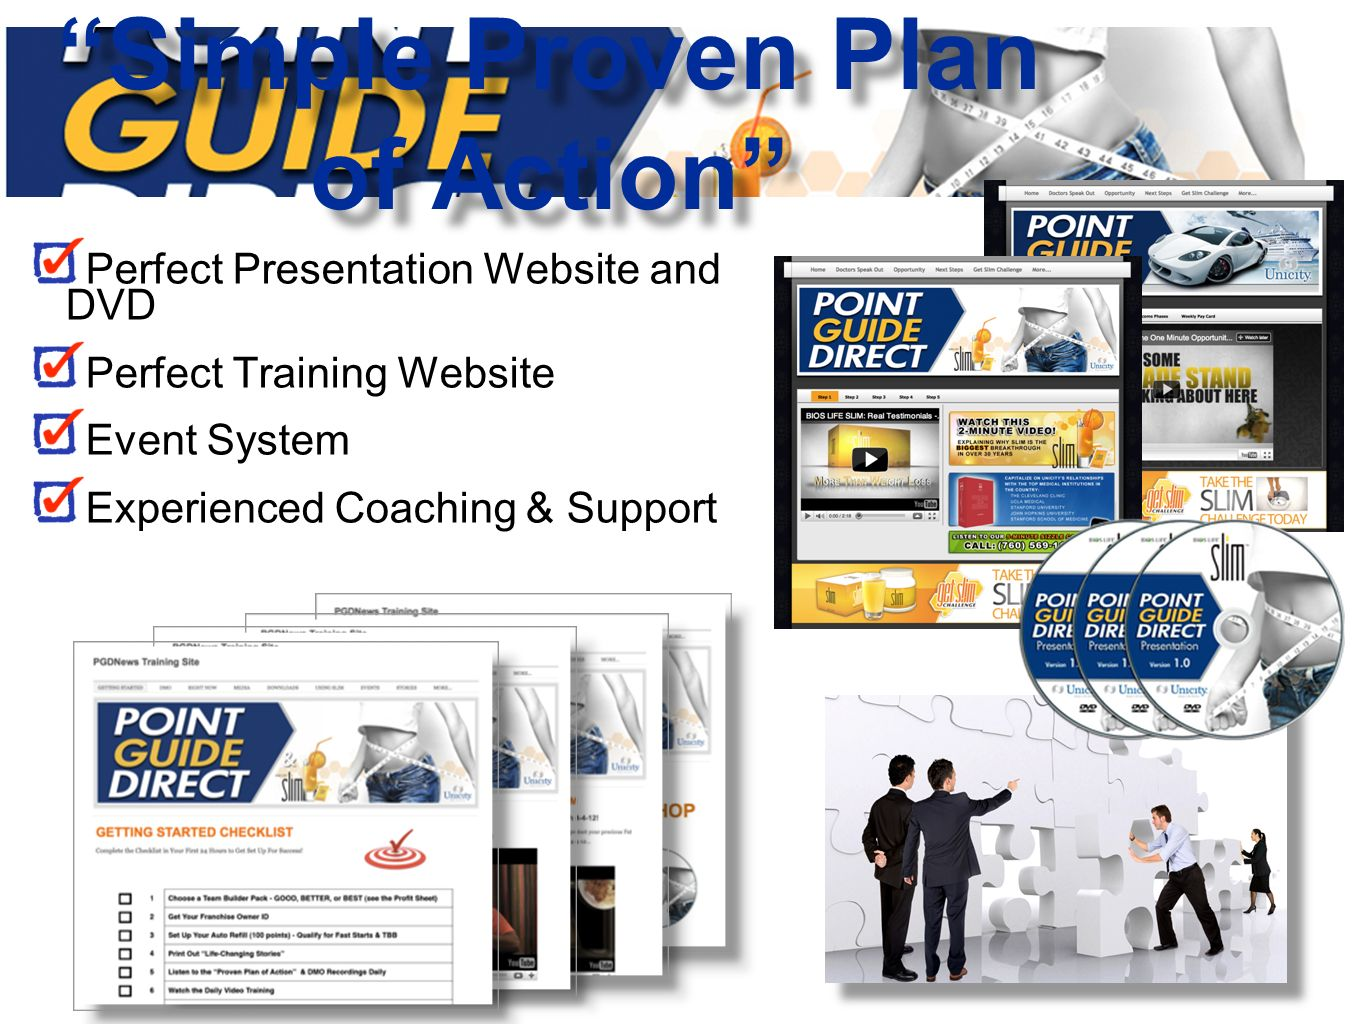 Perfect Presentation Website and DVD Perfect Training Website Event System Experienced Coaching & Support Simple Proven Plan of Action